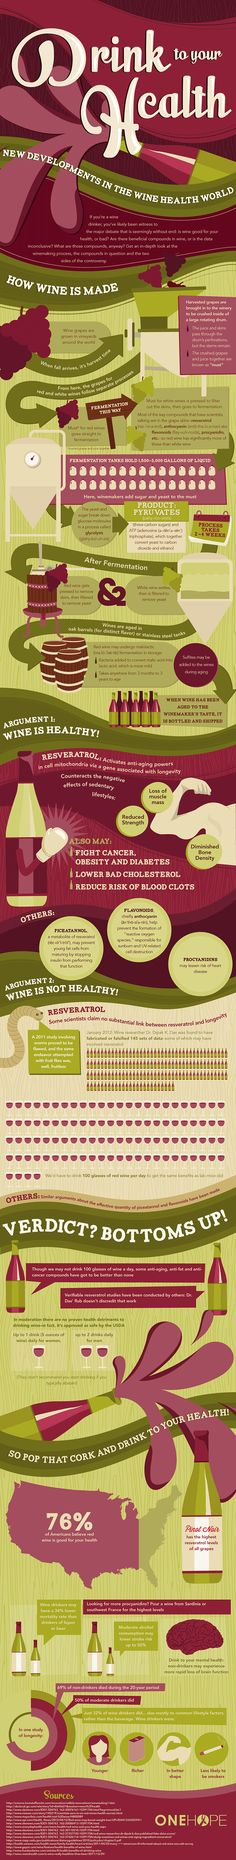 Drink to Your Health #Infographic